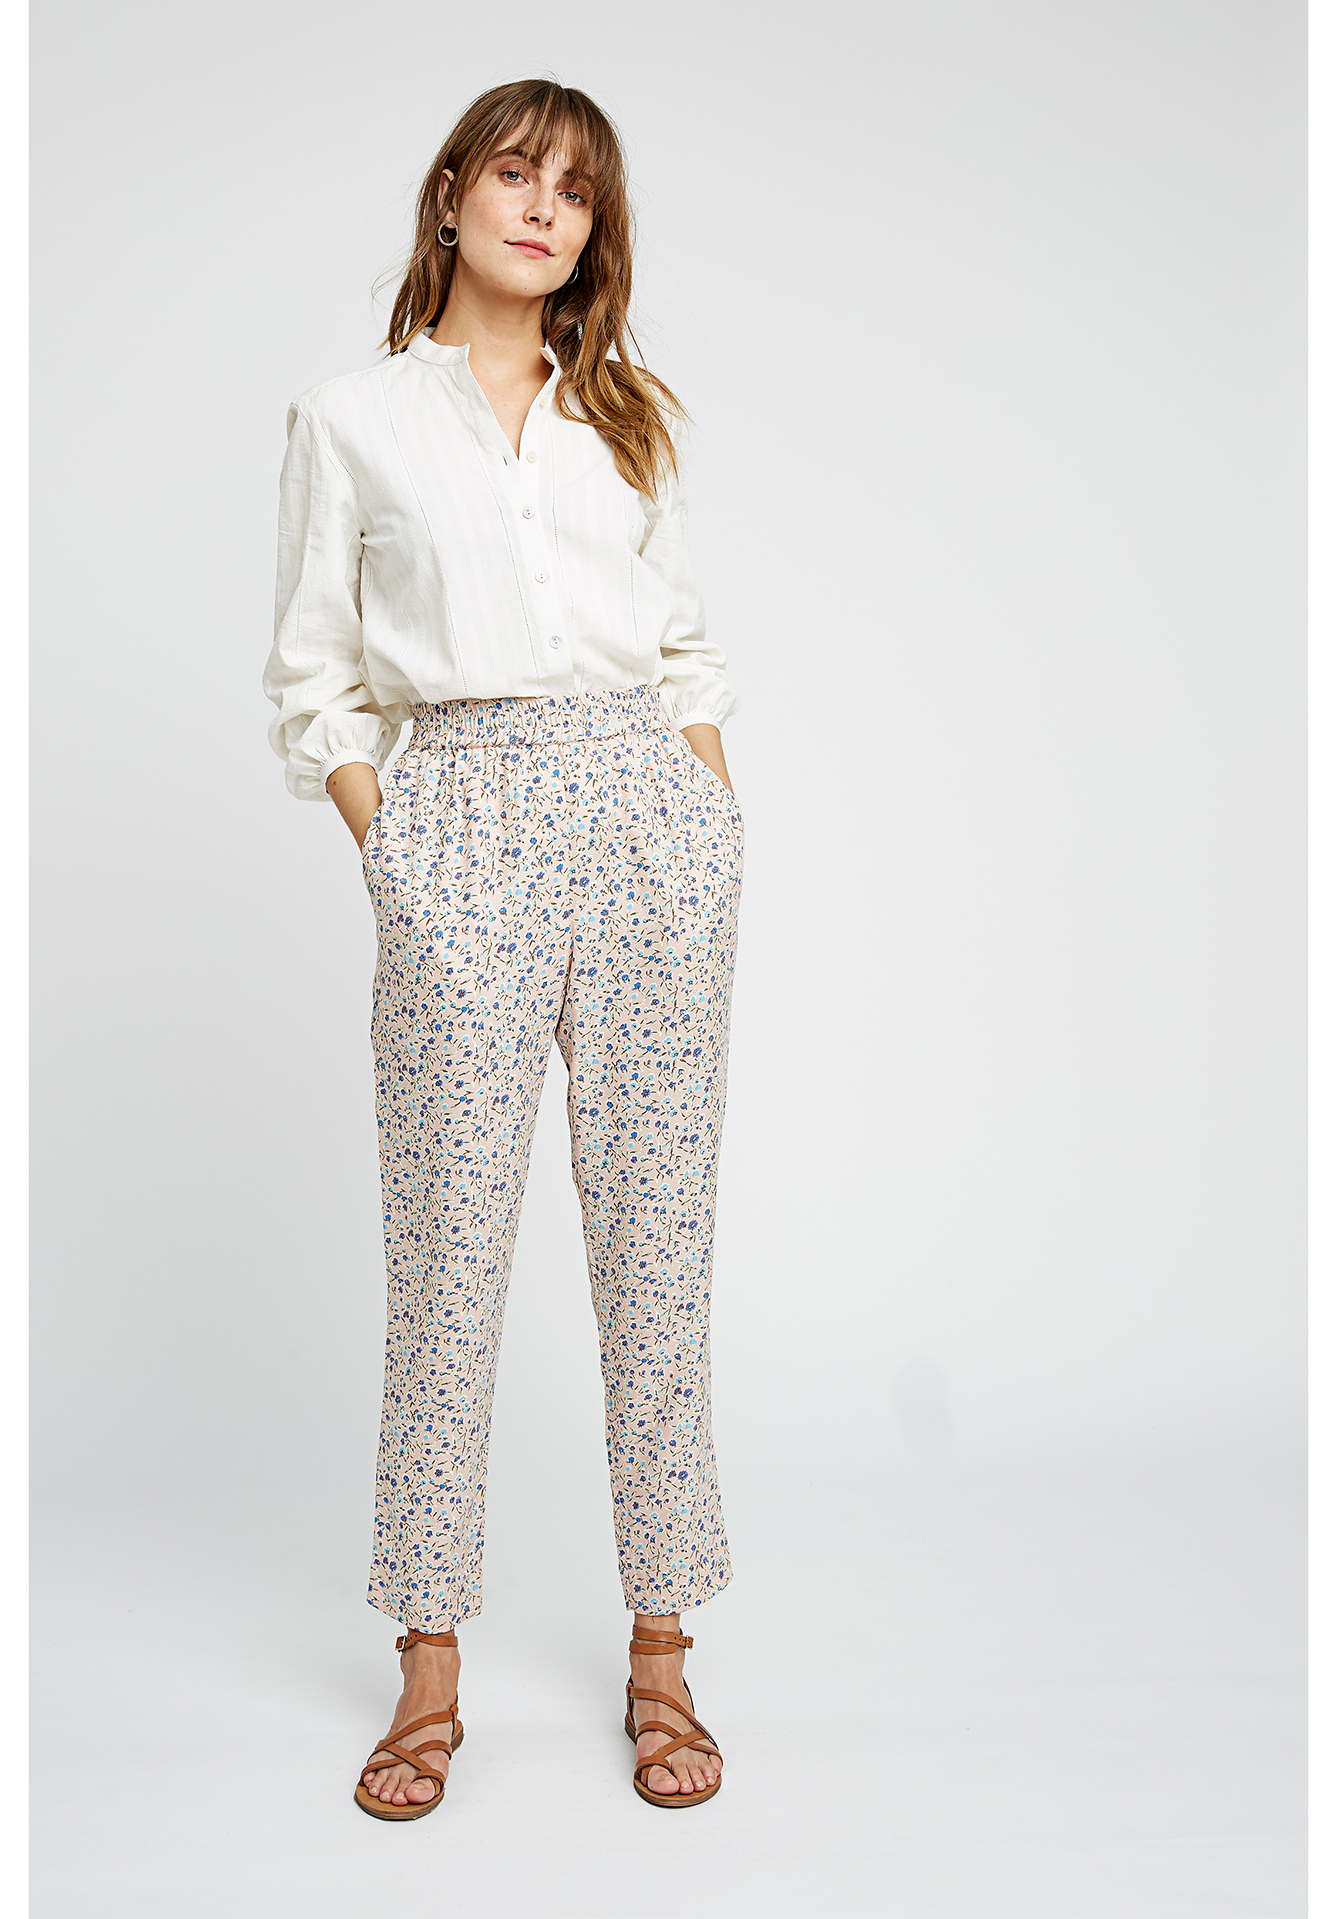 Or wear the trouser version!